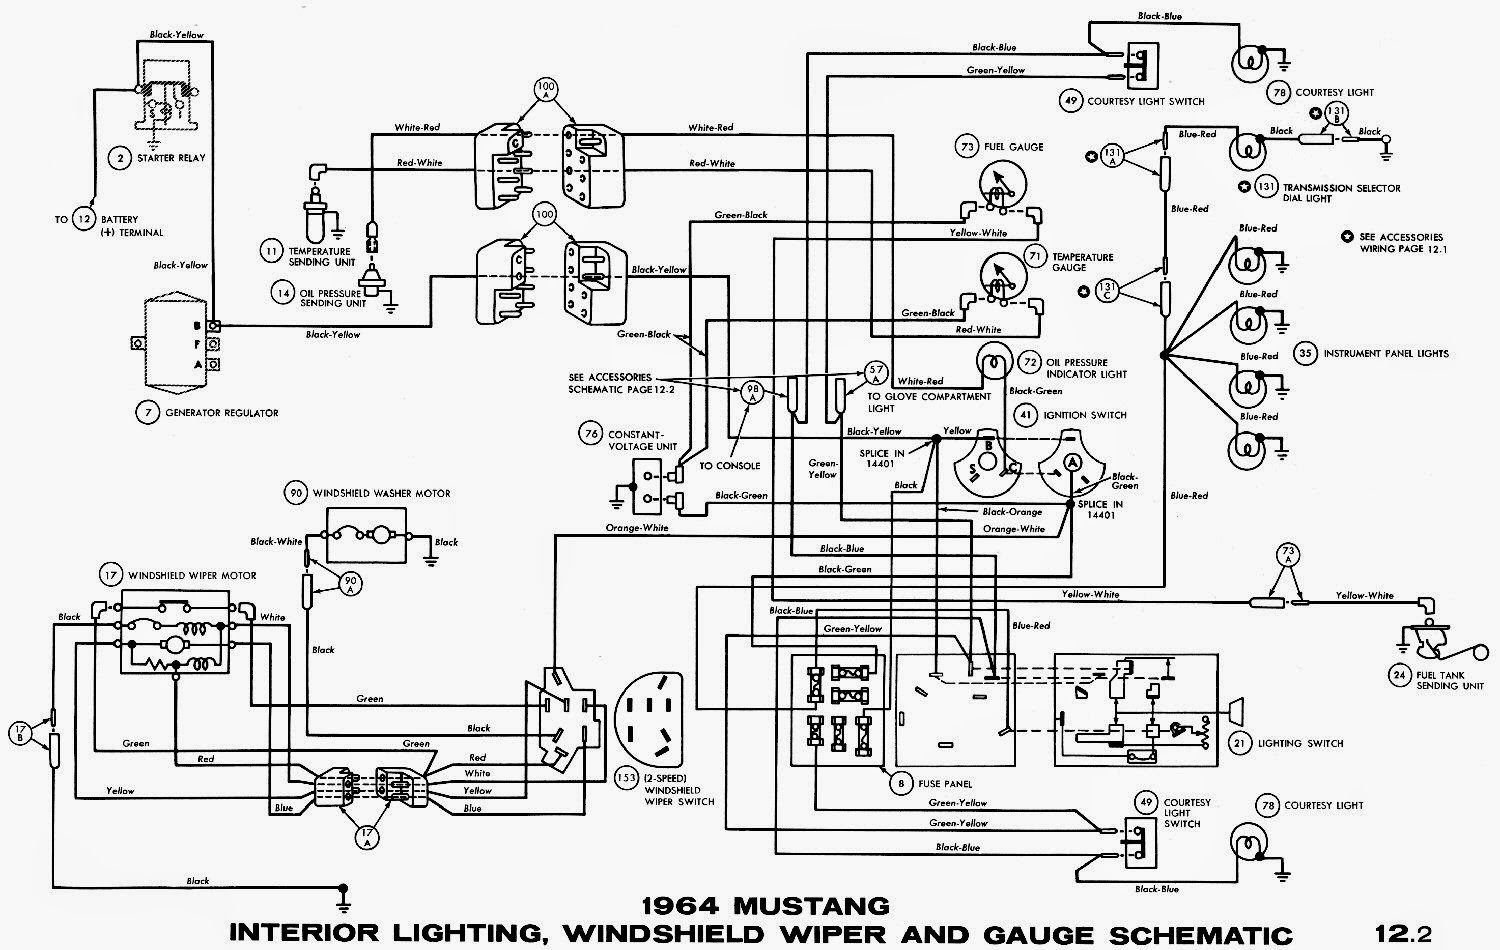 1964 mustang wiring diagrams schematic wiring diagrams 1964 mustang wiring diagrams swarovskicordoba Images